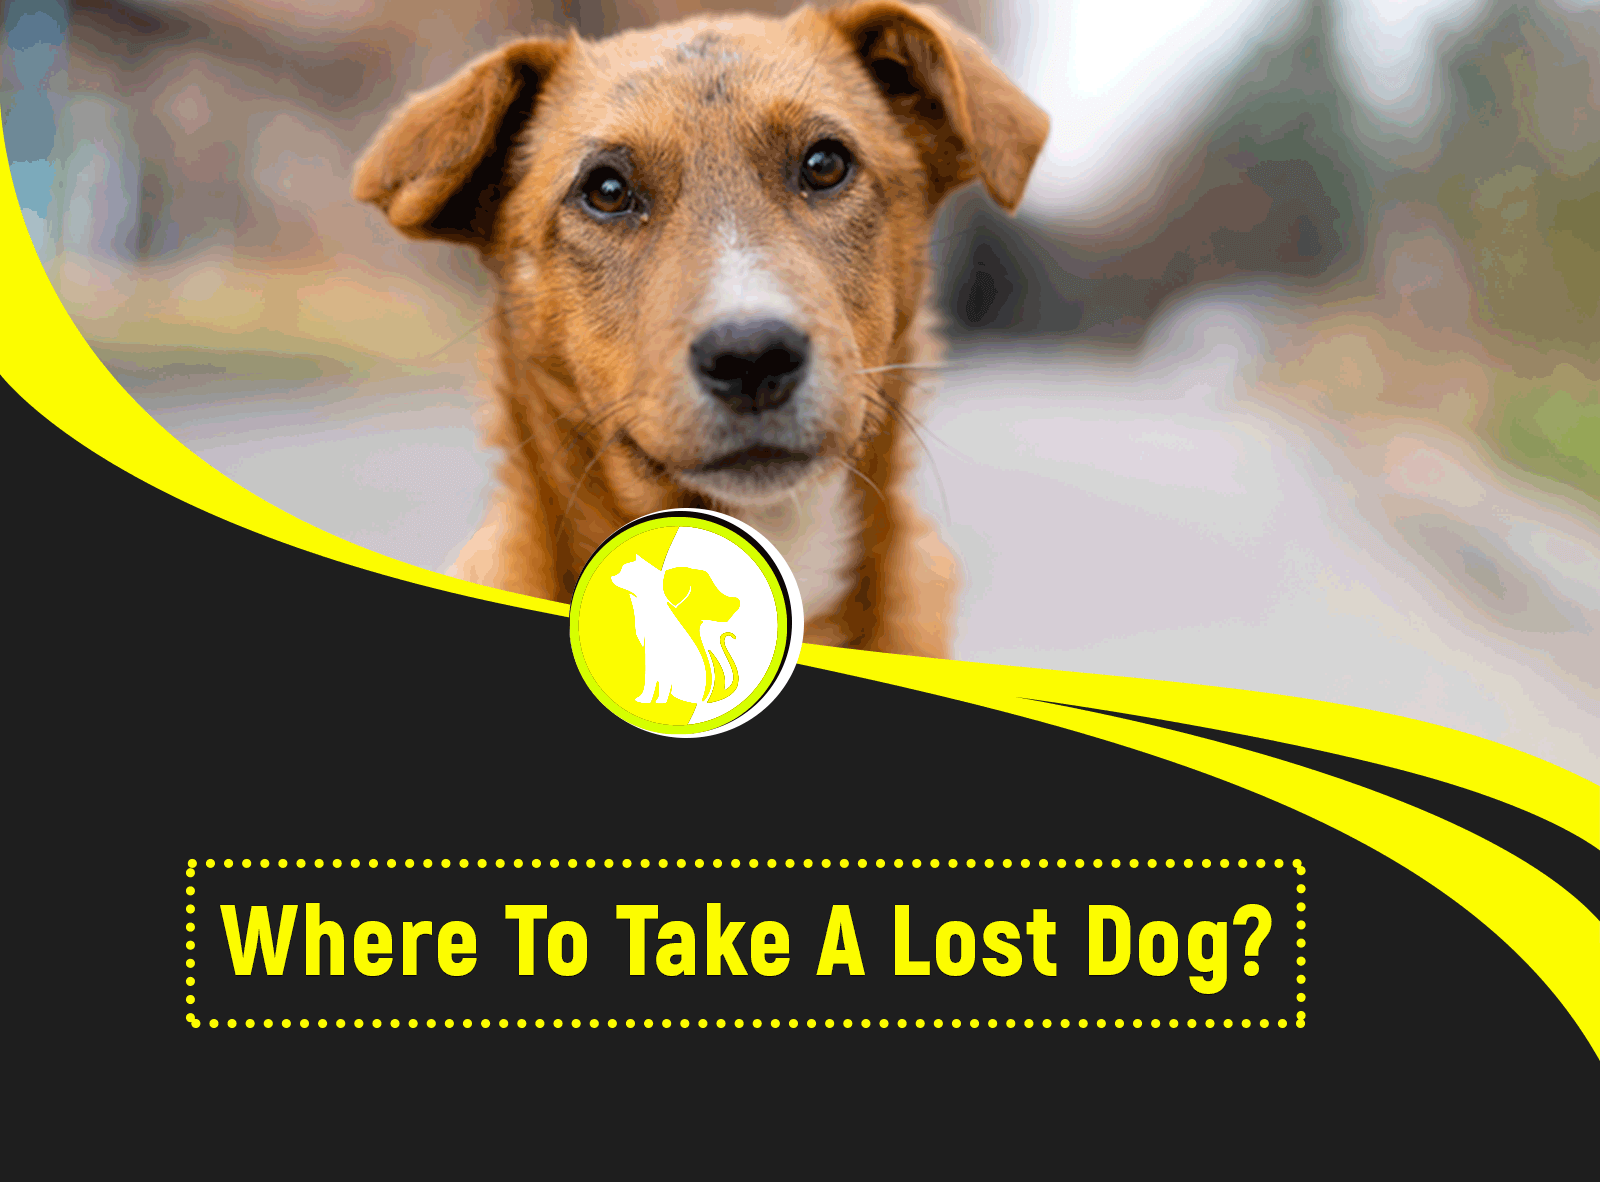 Where to Take a Lost Dog?